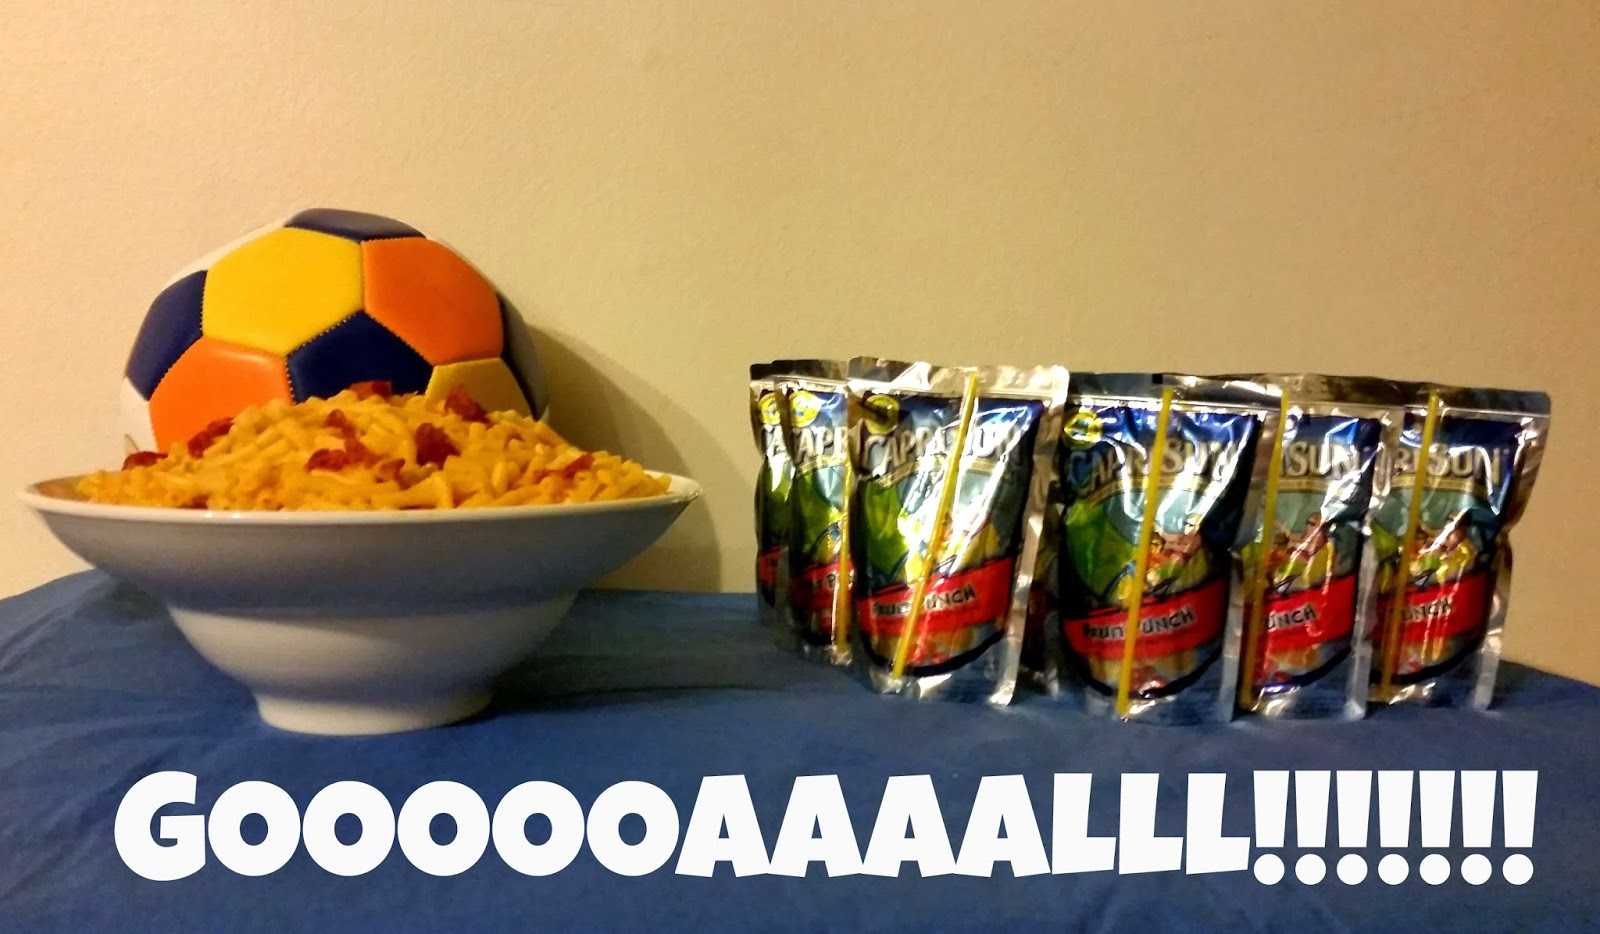 Mac & Cheese and Capri Sun: The Perfect Pairing #GolazoKraft #shop